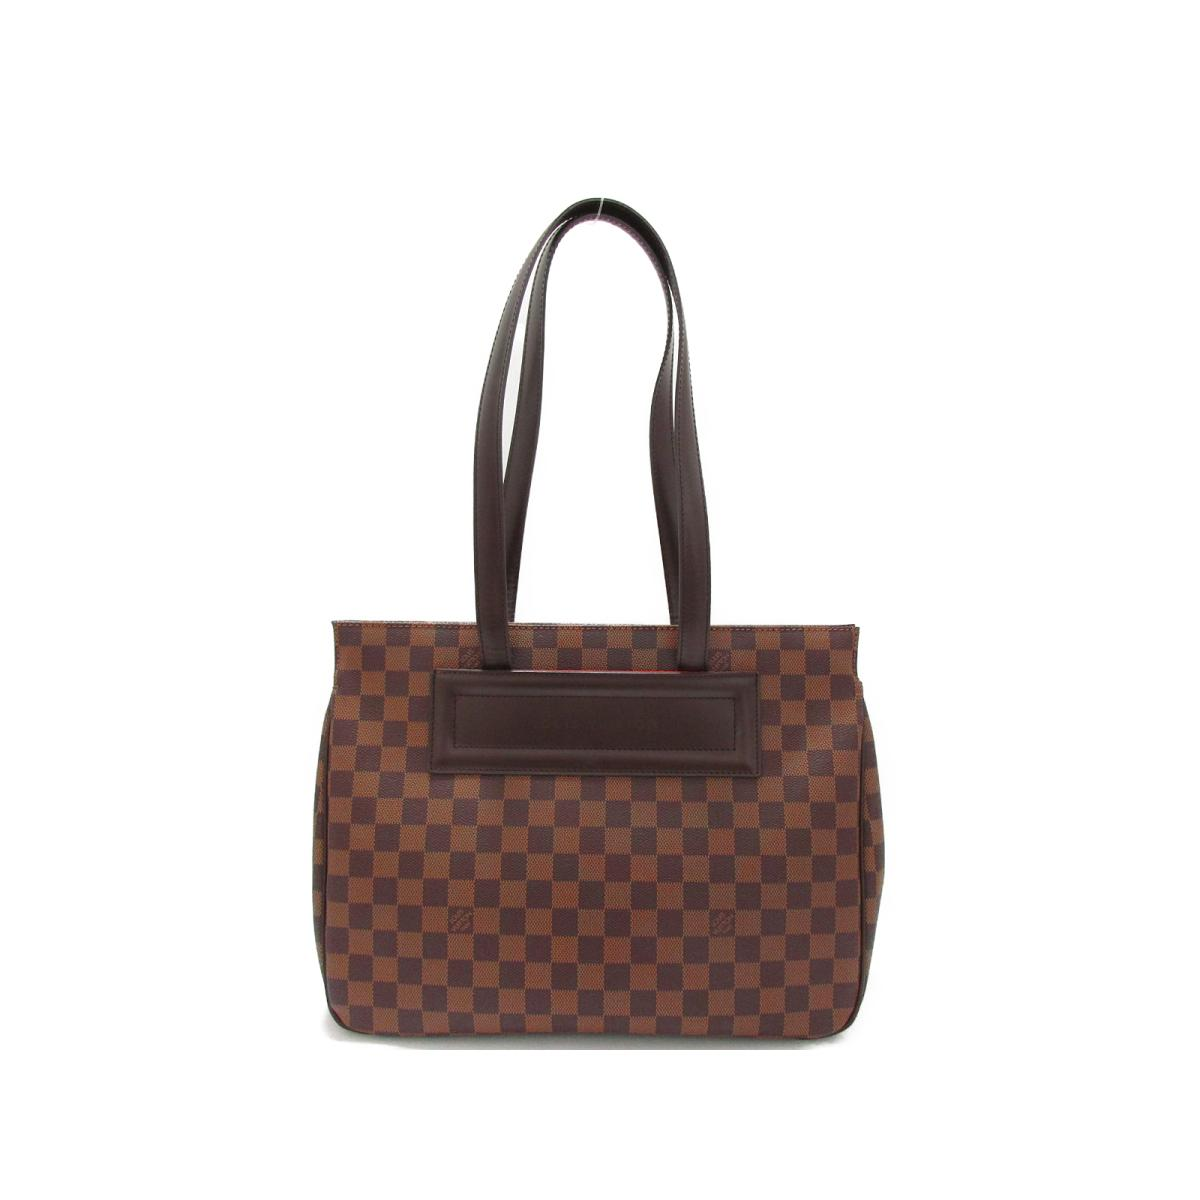 BRANDOFF  Authentic LOUIS VUITTON Parioli Tote Bag N 51123 Damier ... 0b360a2f31e9f